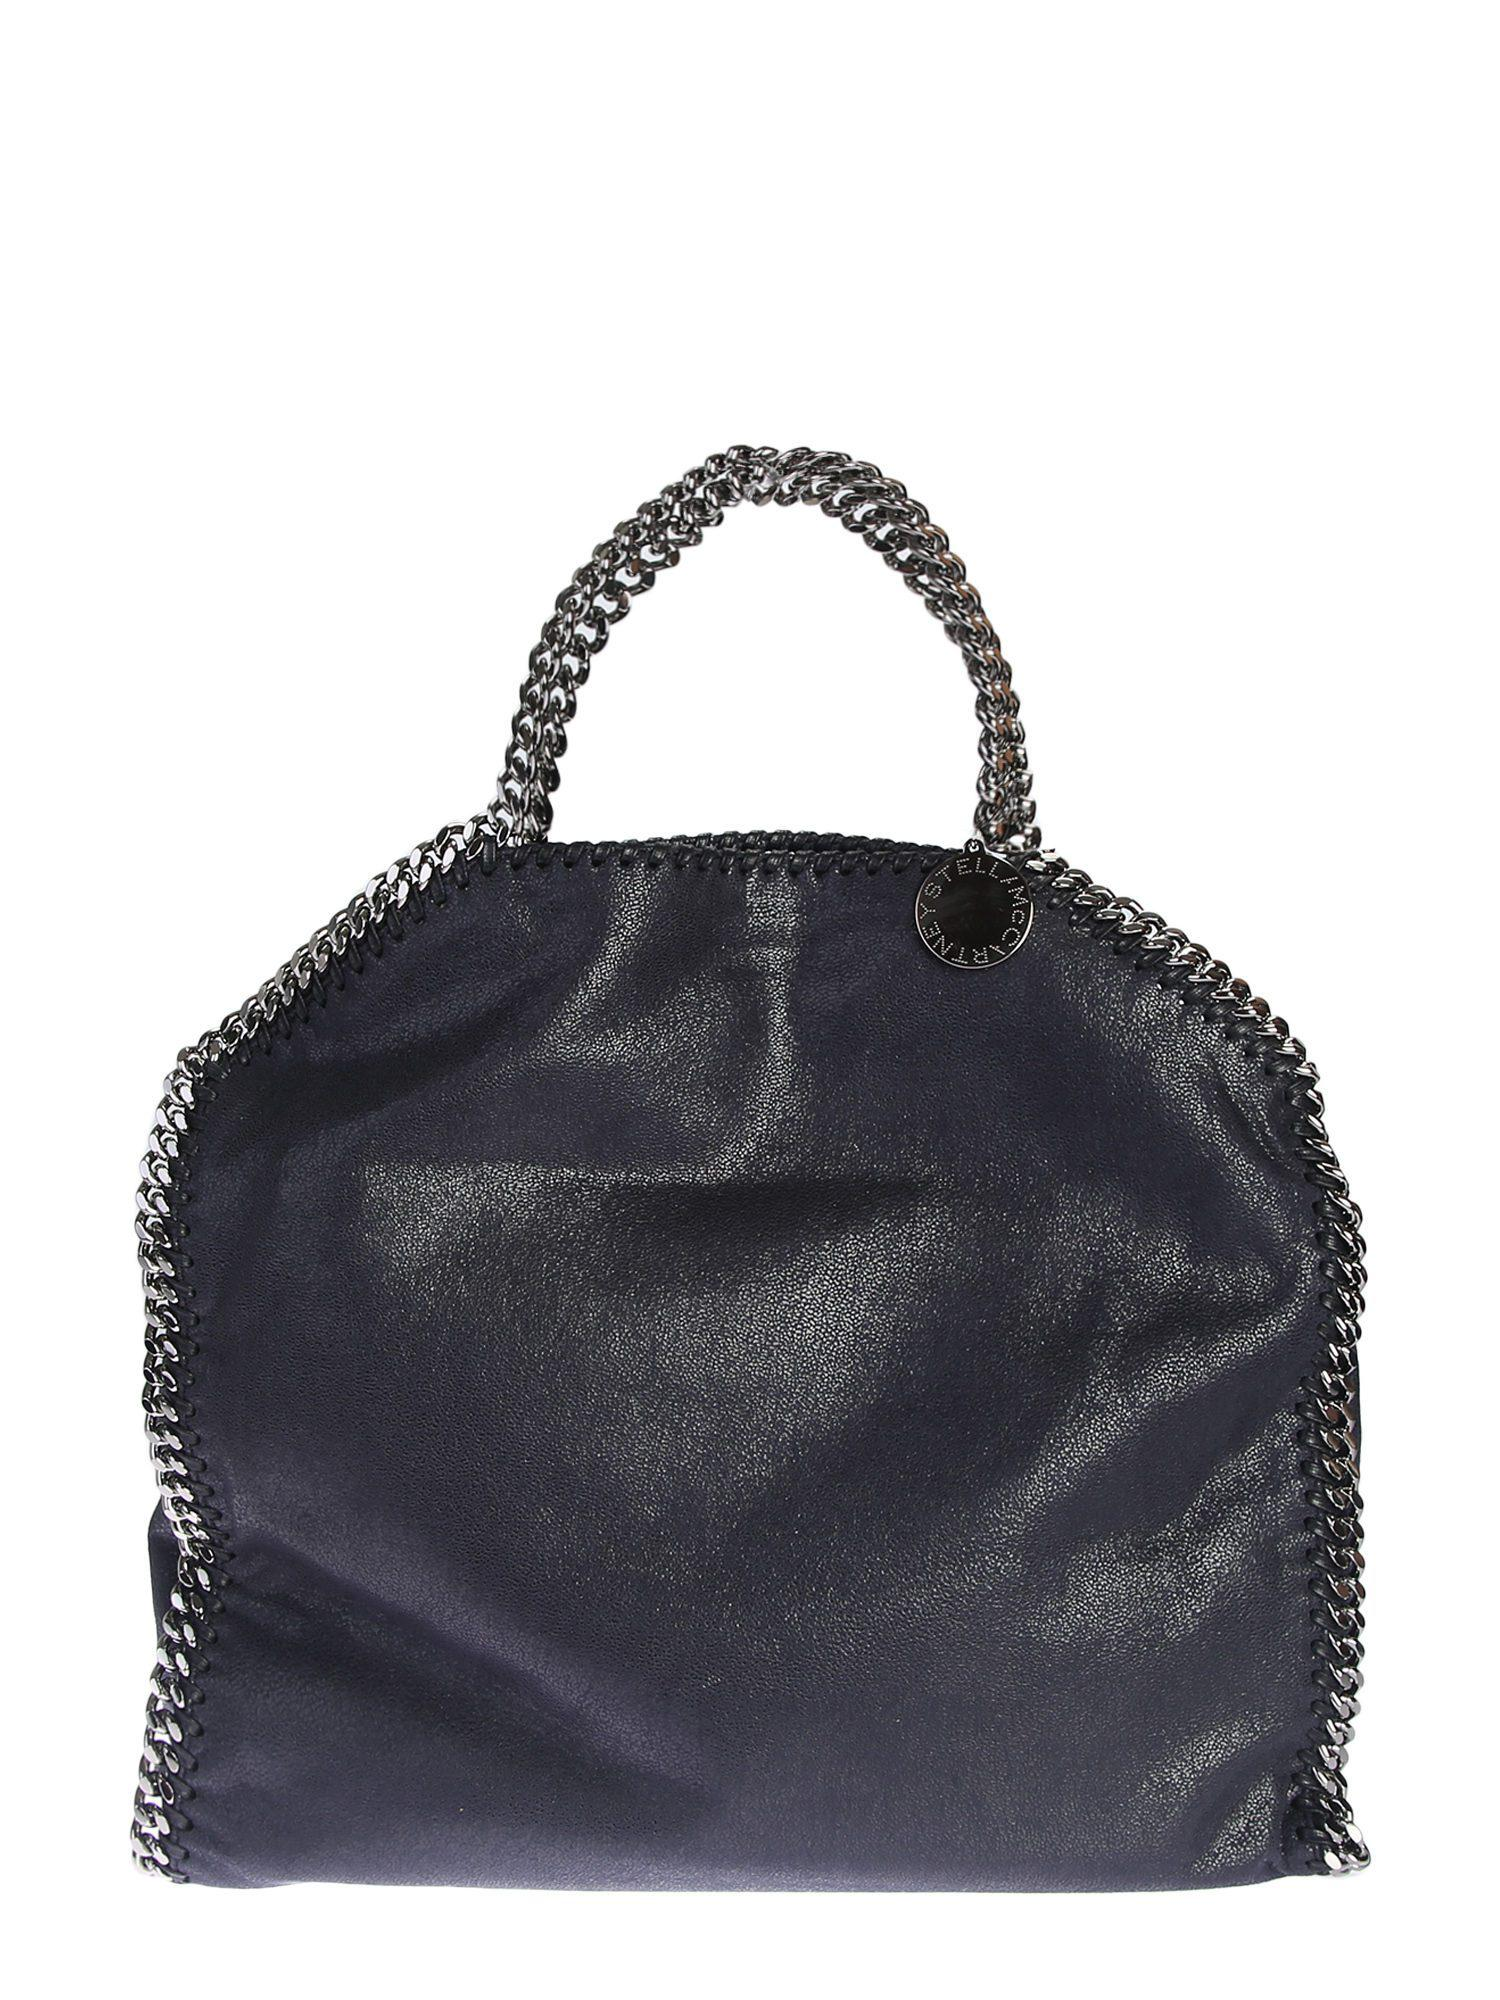 546173794b07 Lyst - Stella Mccartney Faux Leather Falabella Fold Over Tote